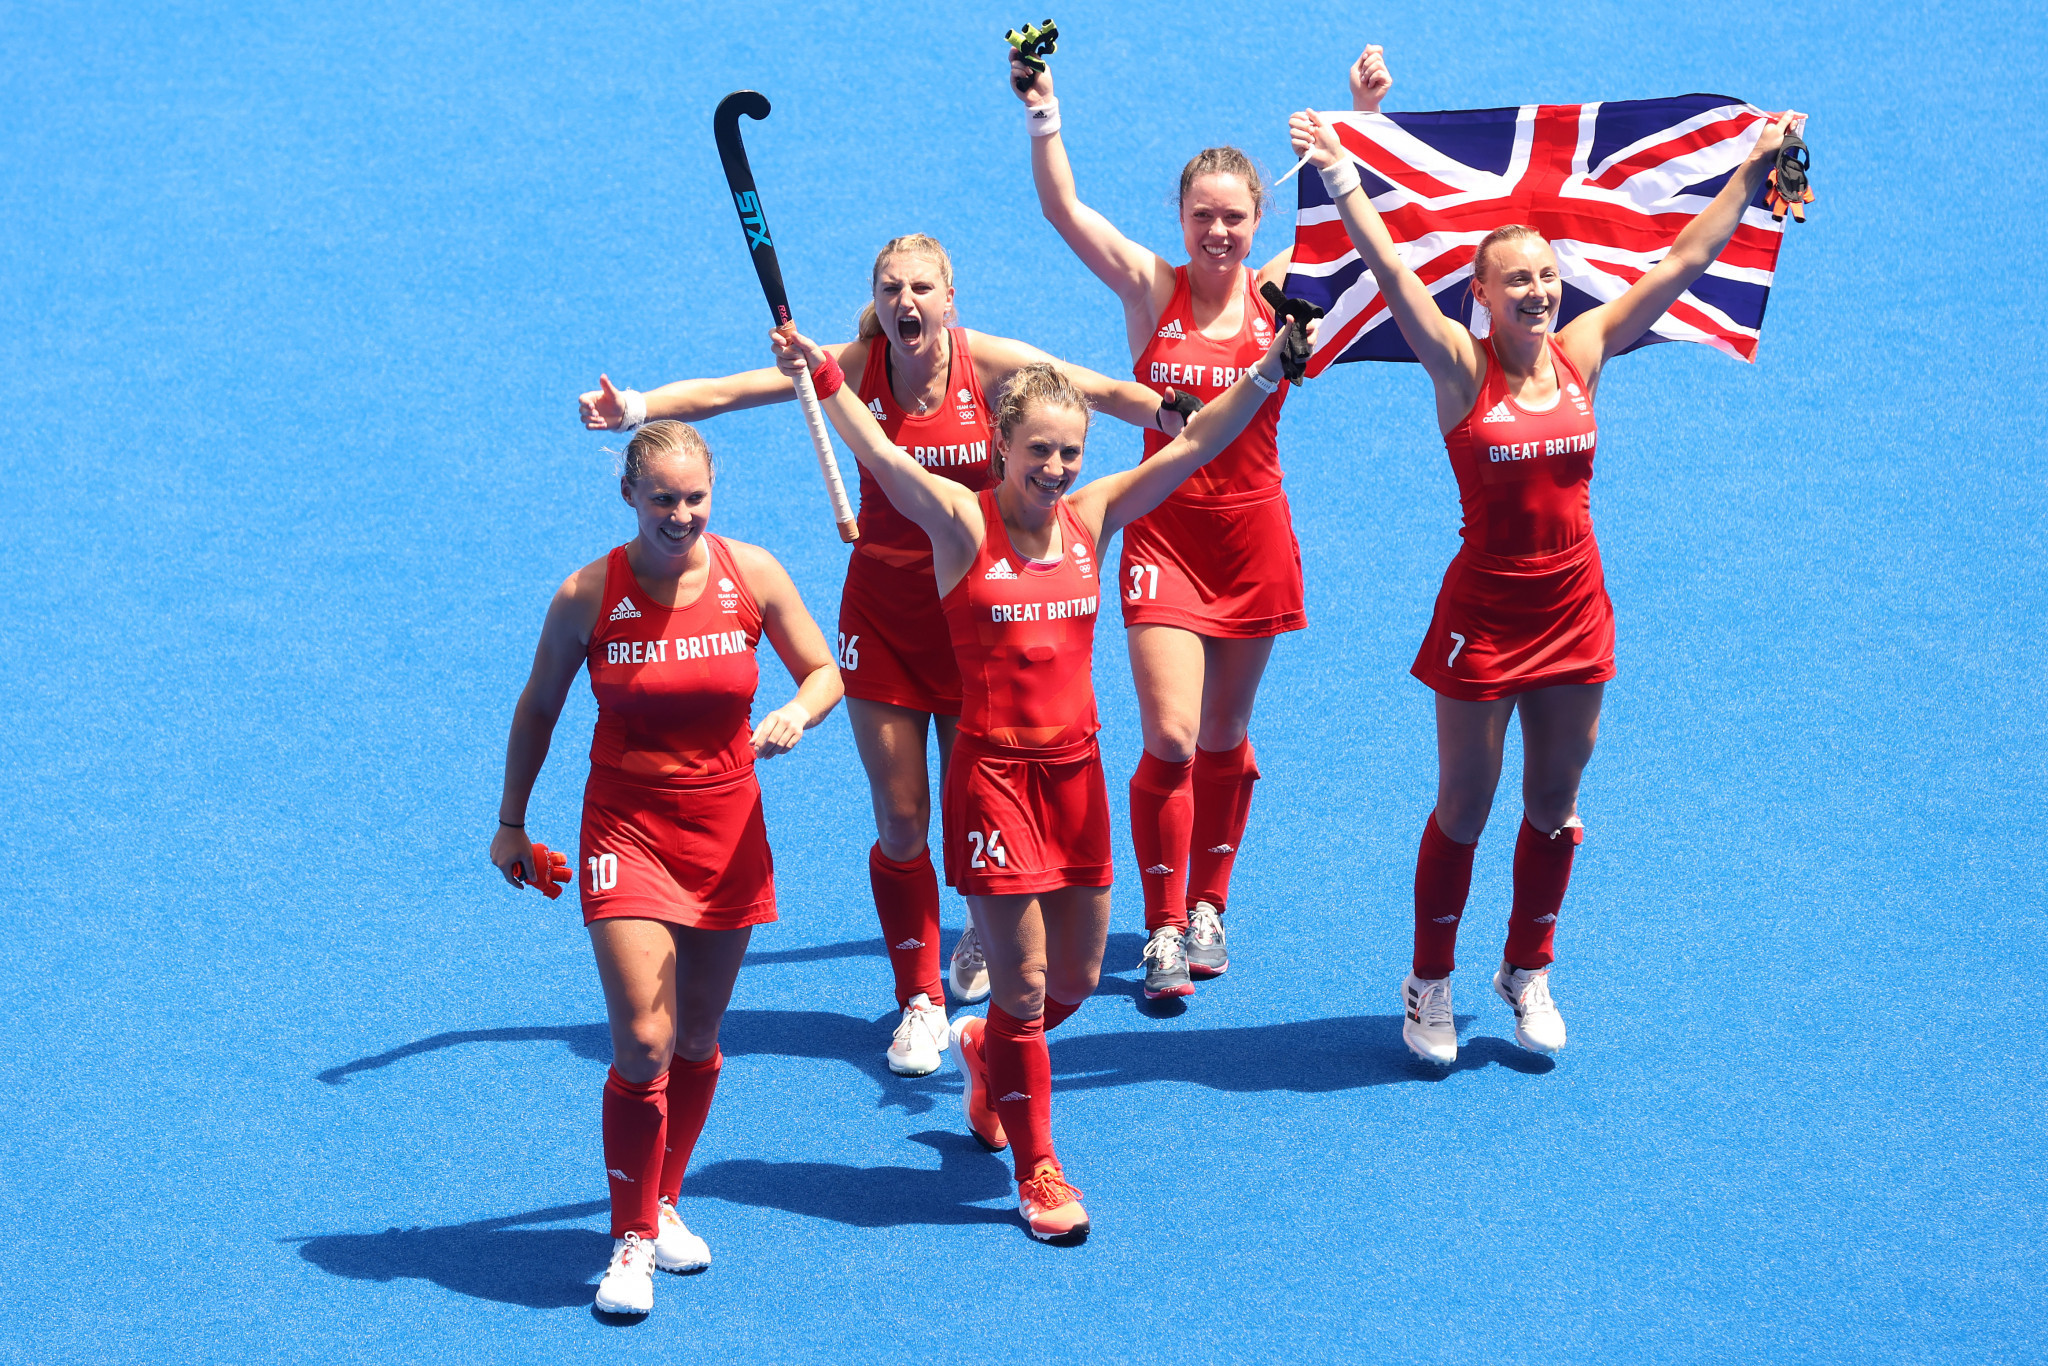 Ralph appointed as head coach for England and Britain women's hockey teams